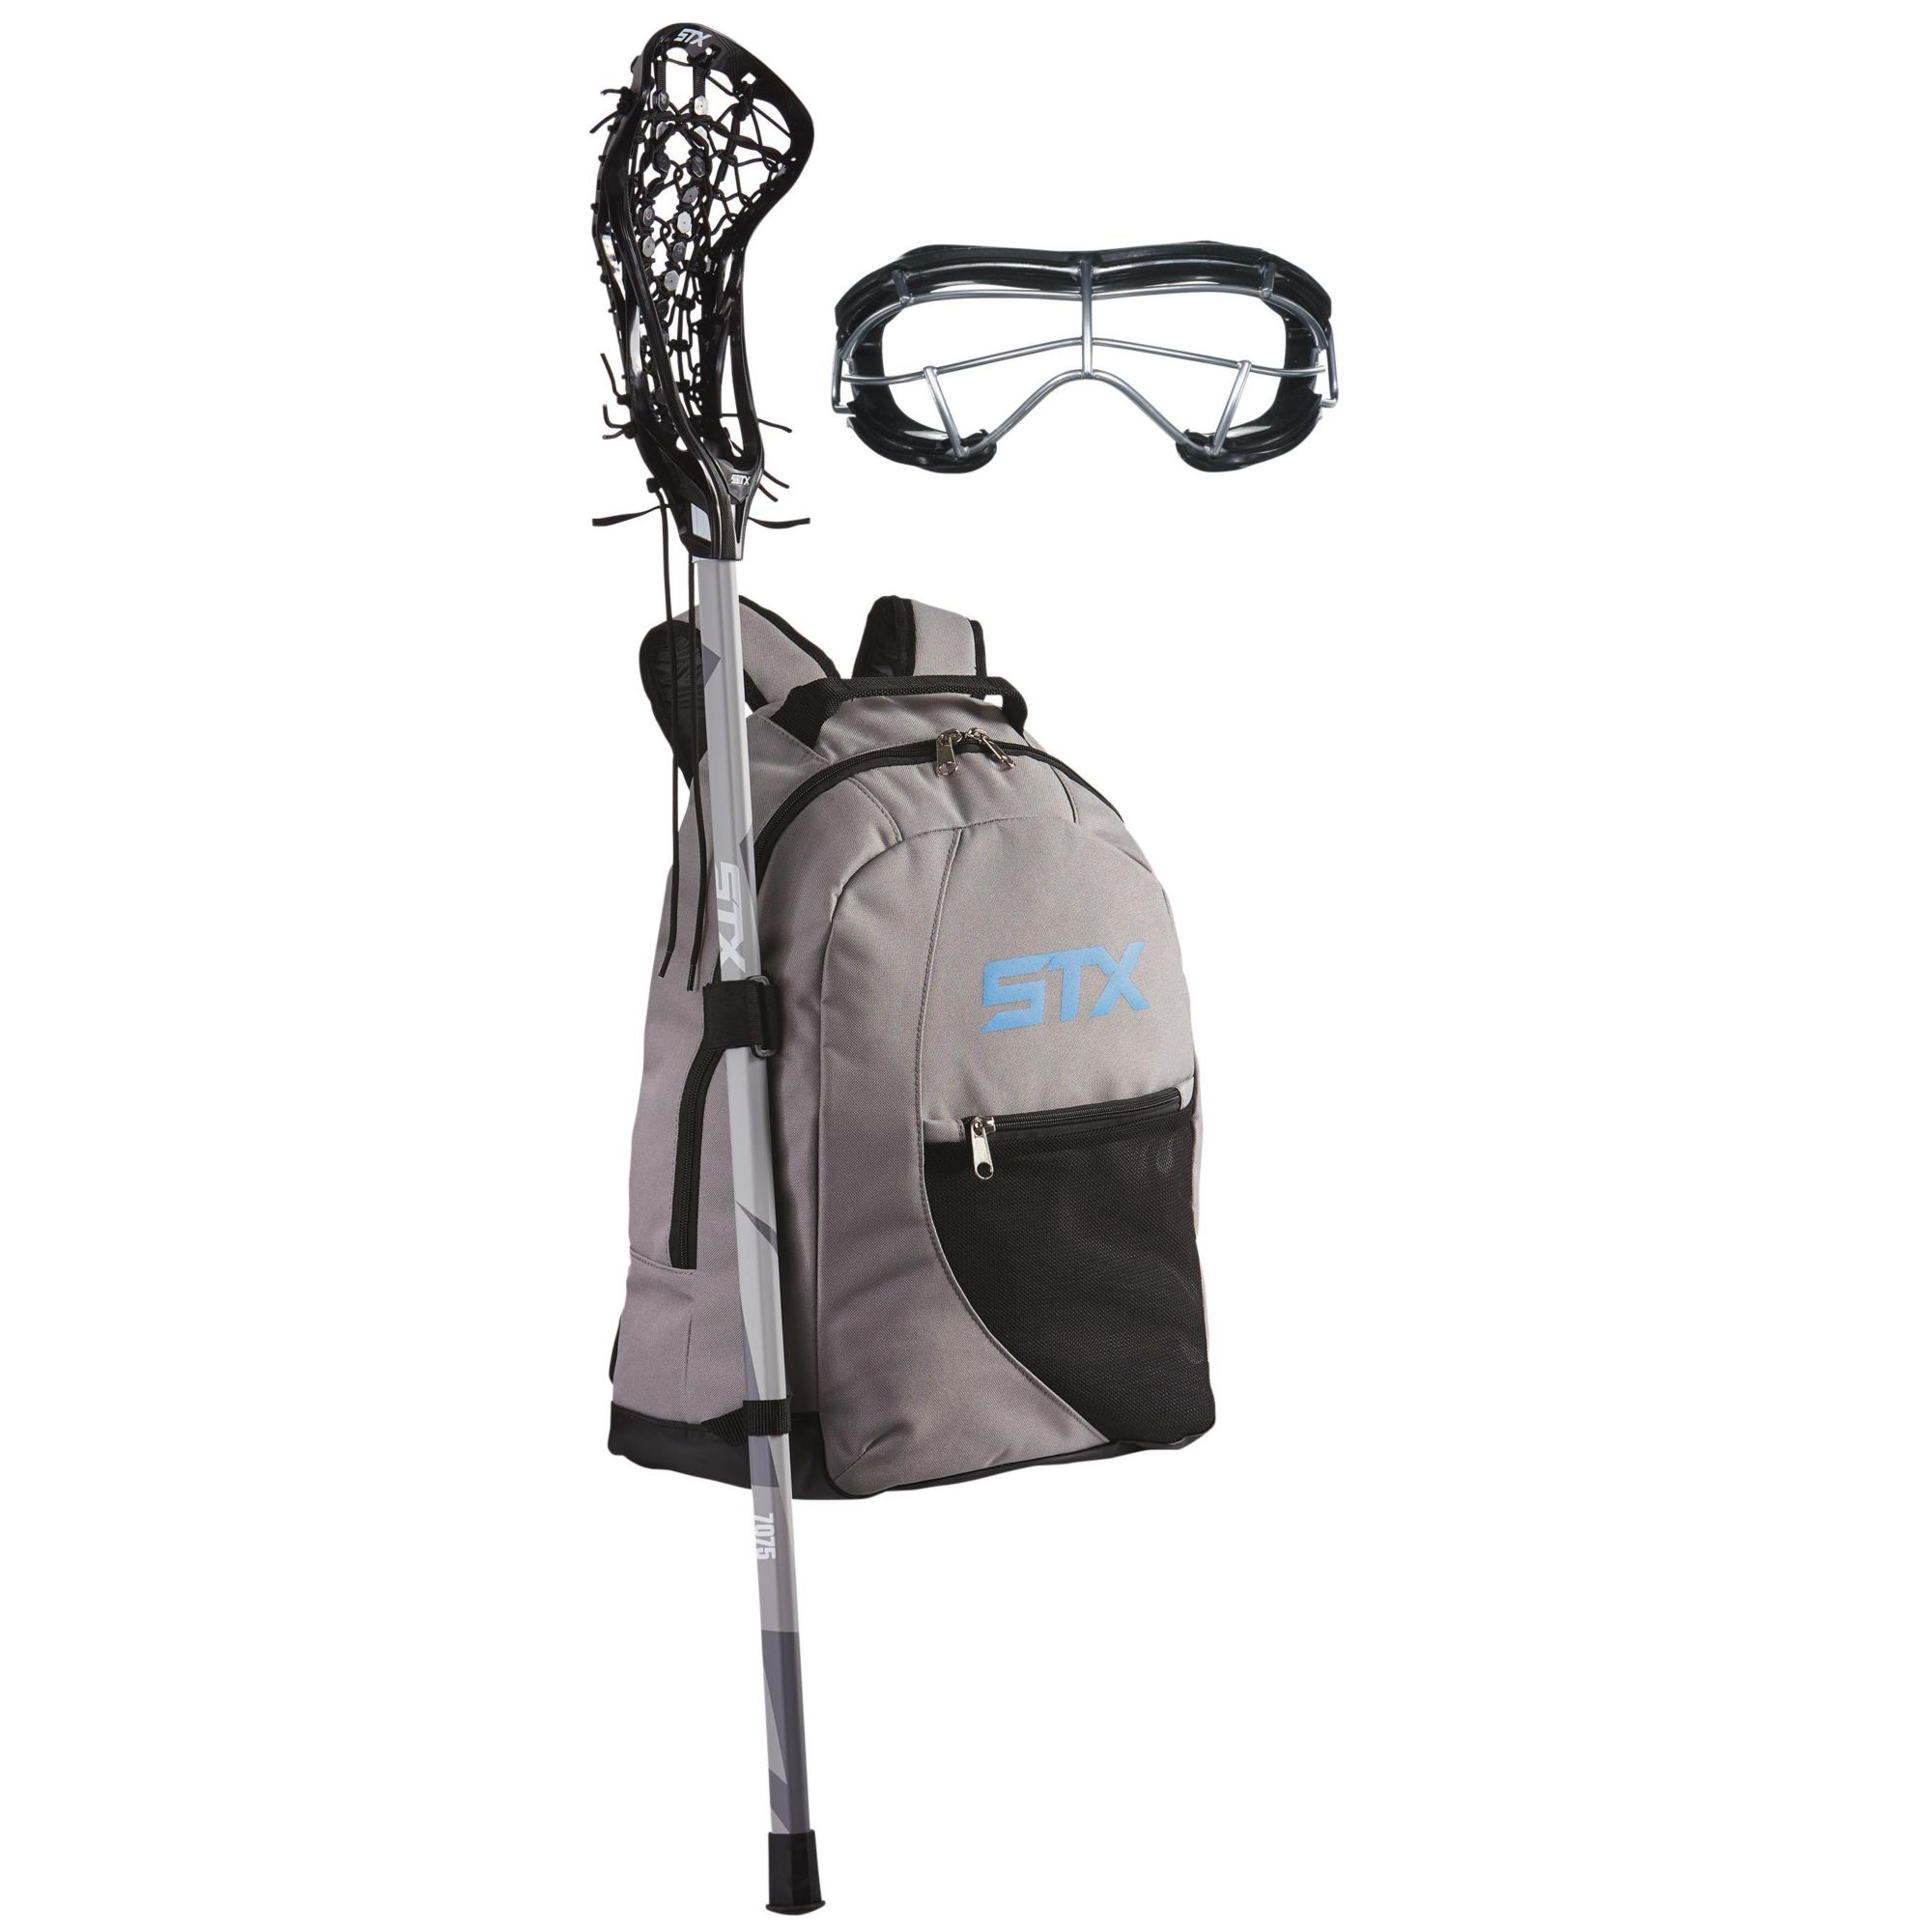 STX Women's Exult 300 on 7075 Lacrosse Package